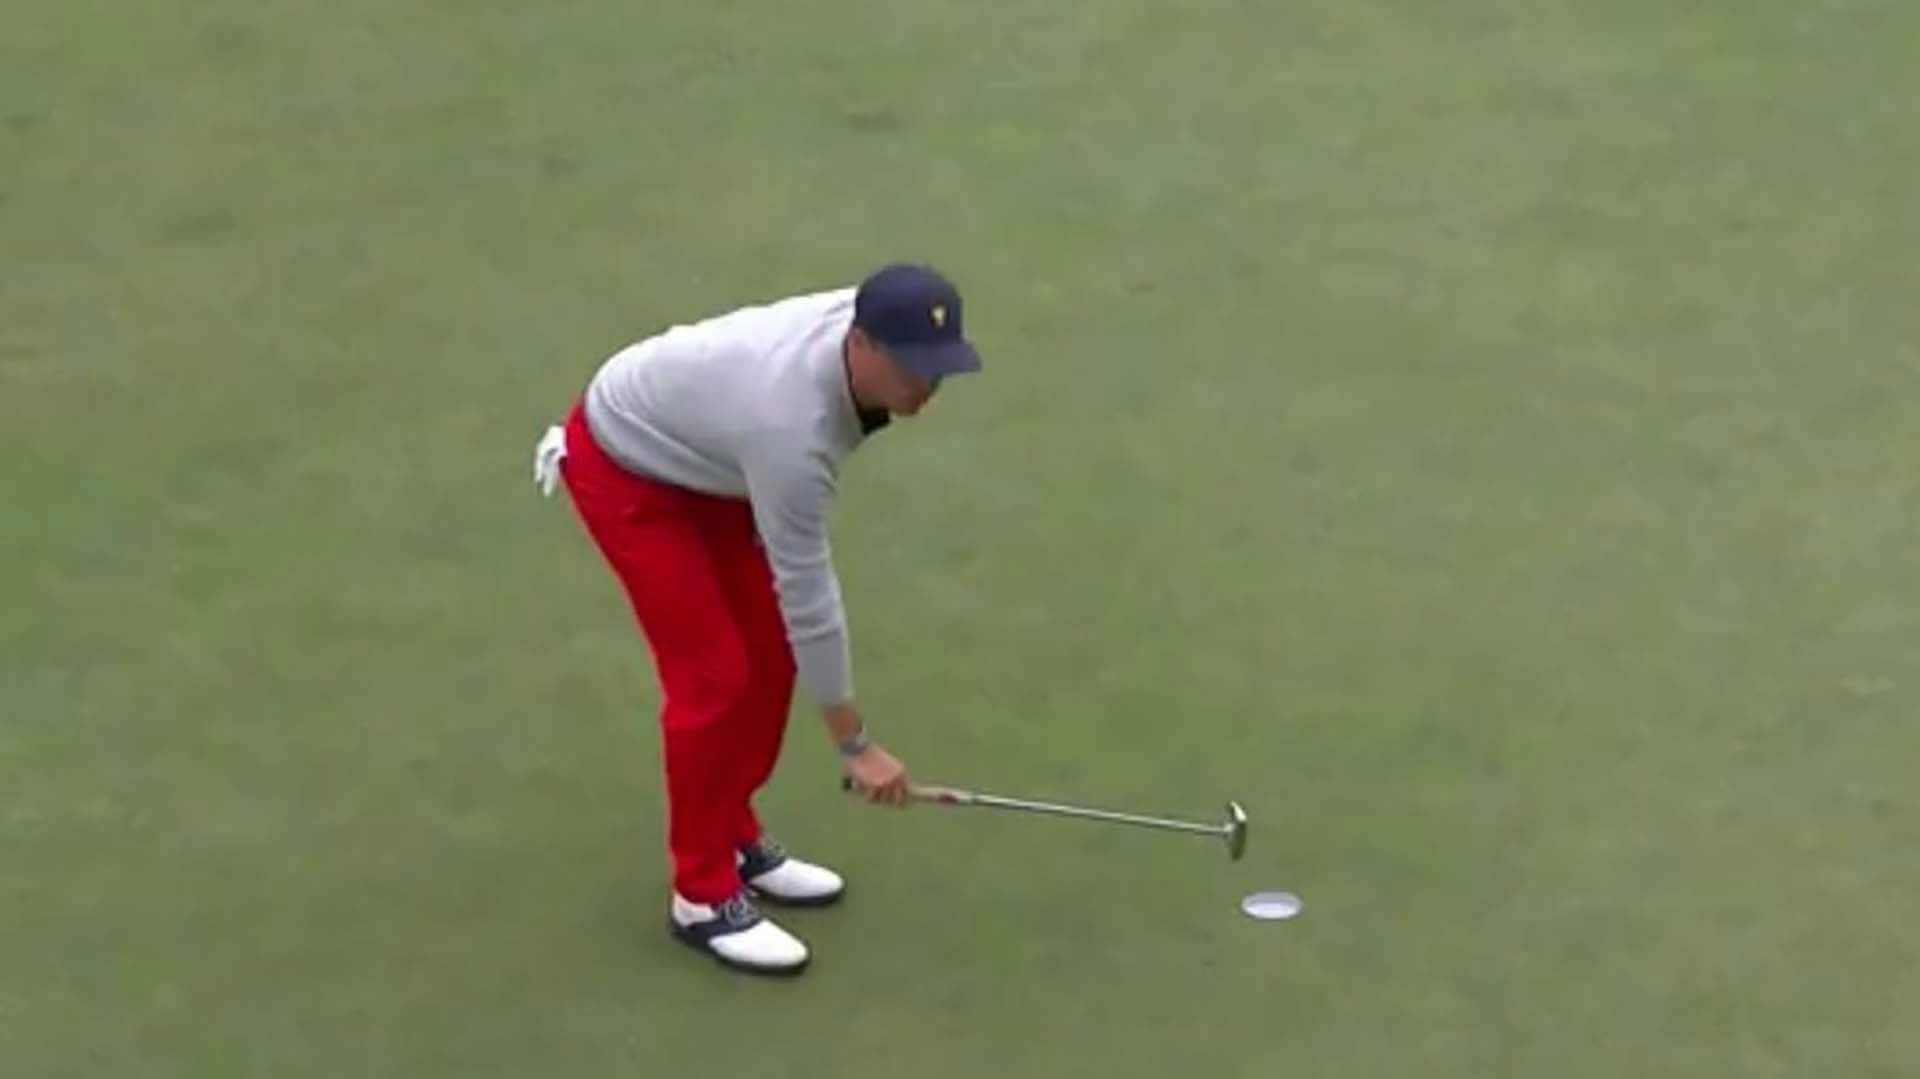 Watch: Thomas miffed after Internationals don't concede putt